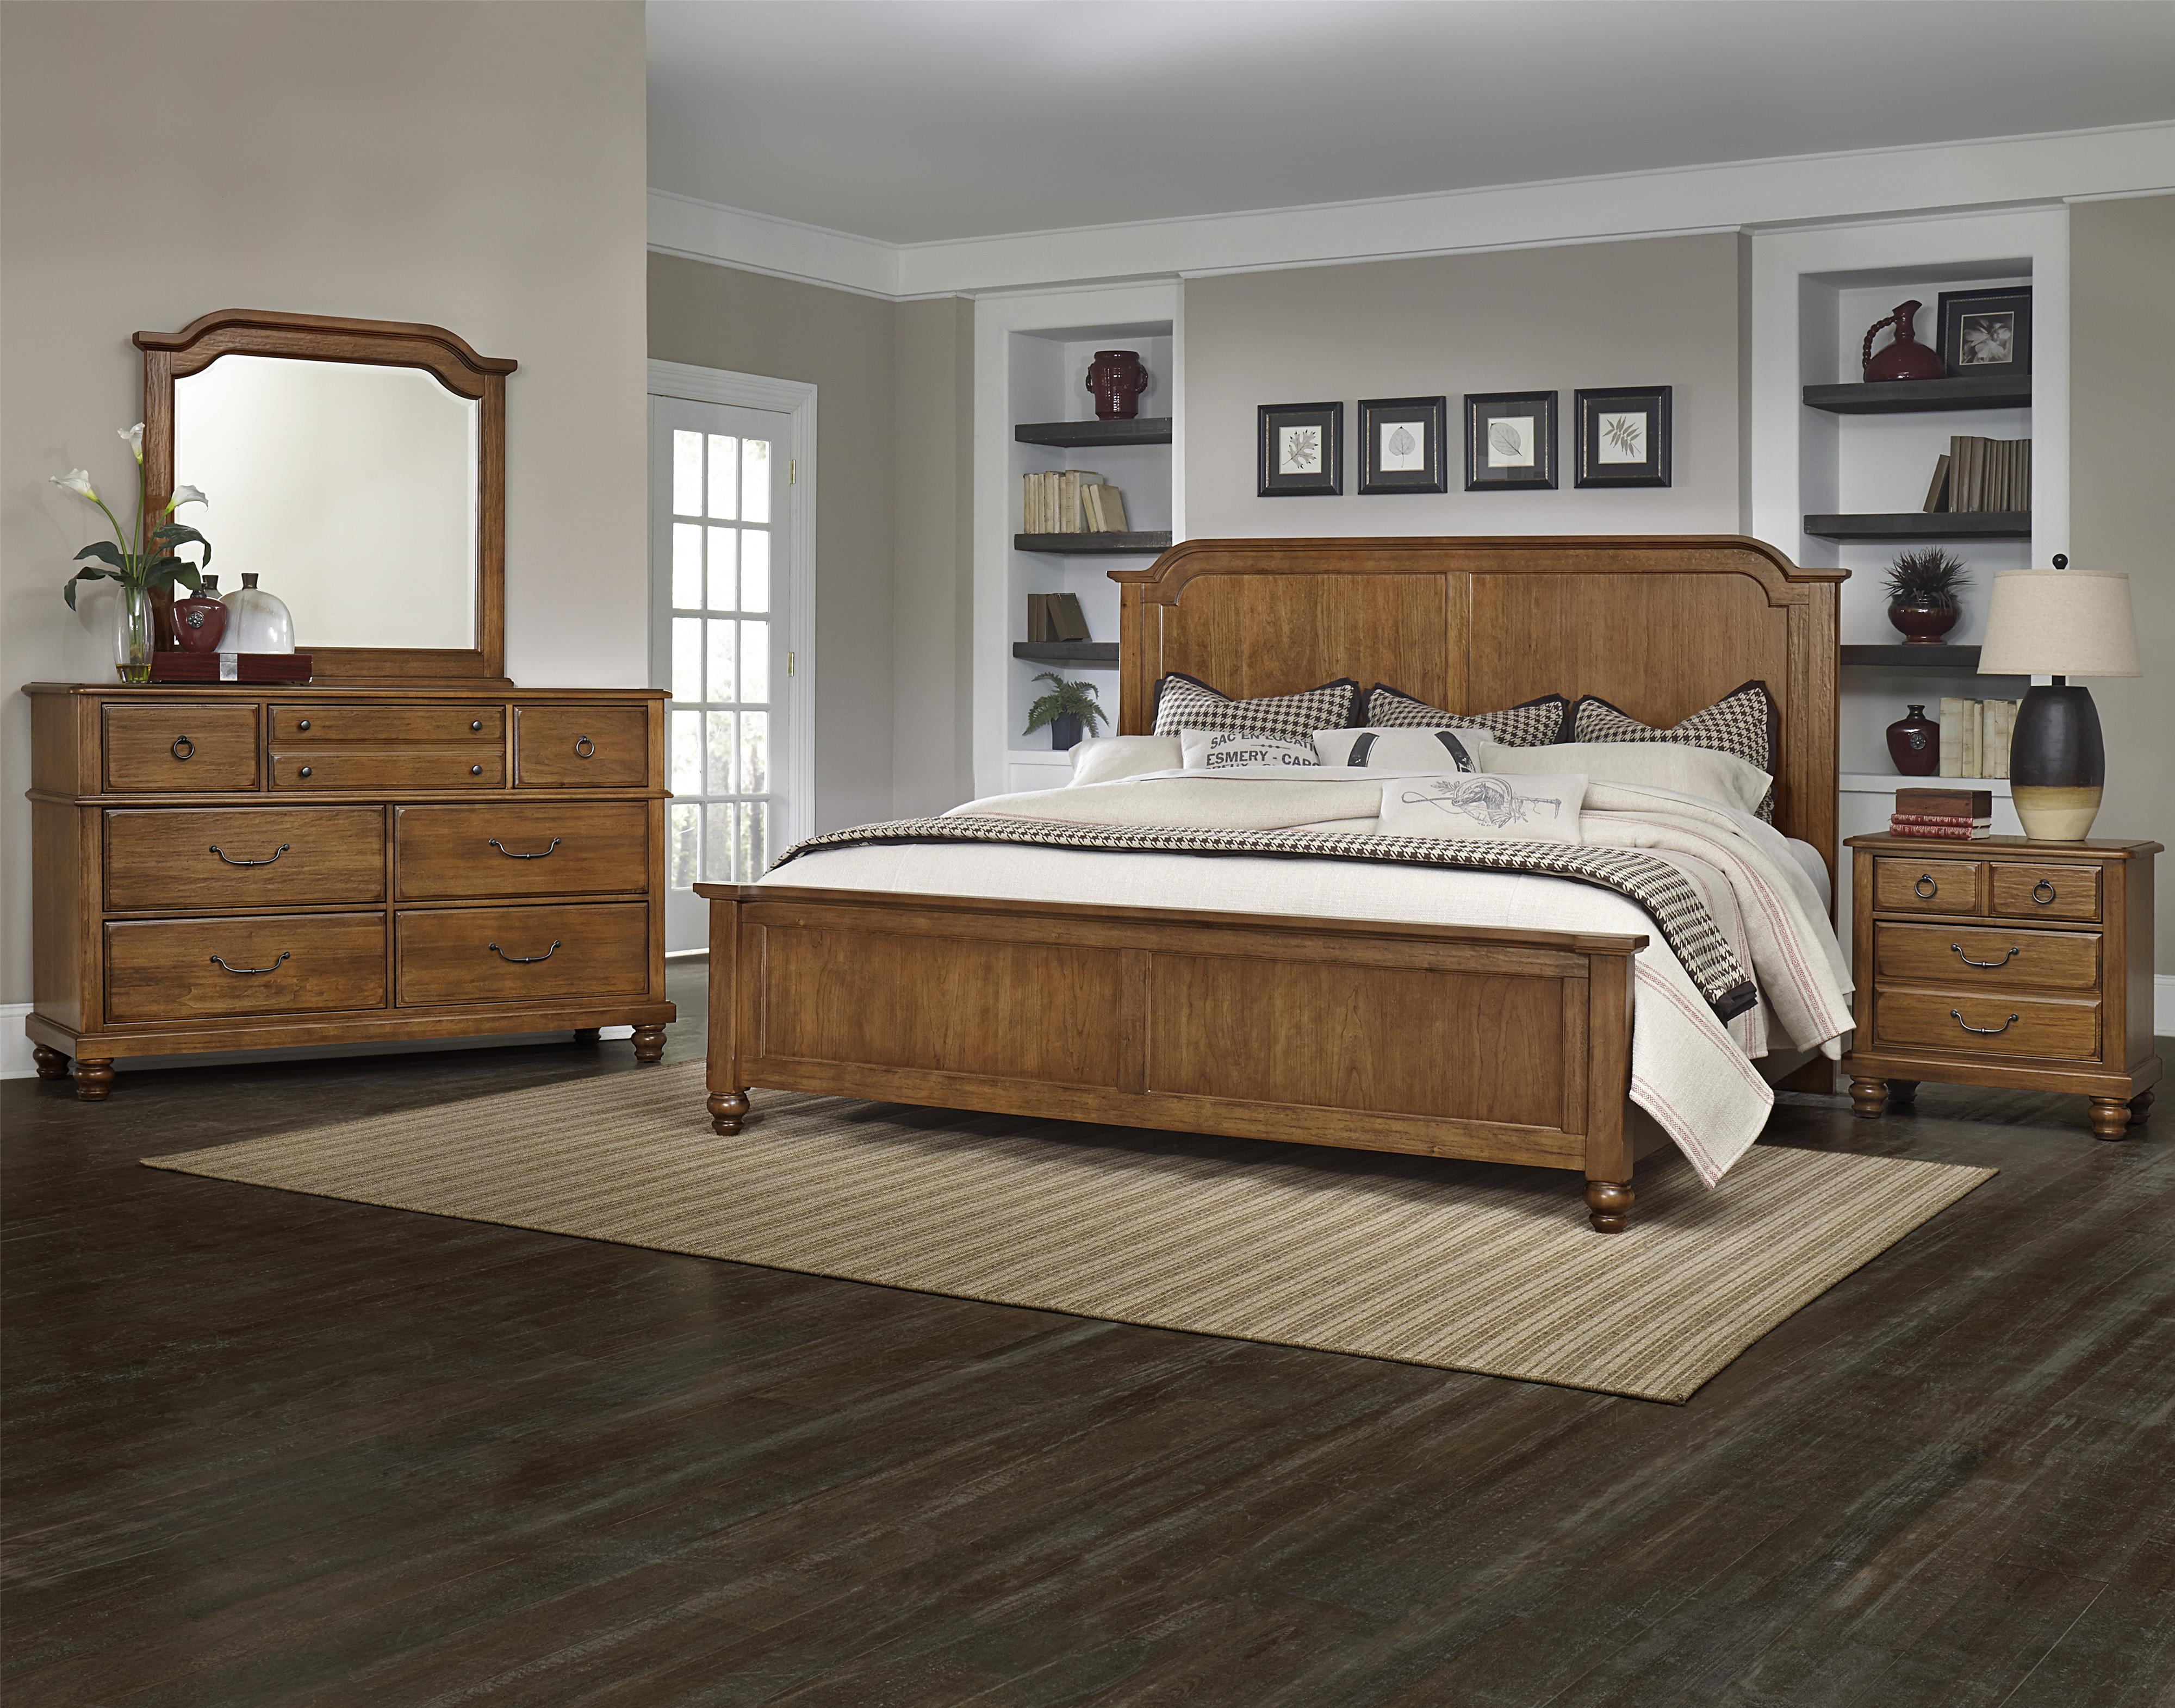 Vaughan Bassett Arrendelle Queen Bedroom Group - Item Number: 440 Q Bedroom Group 1